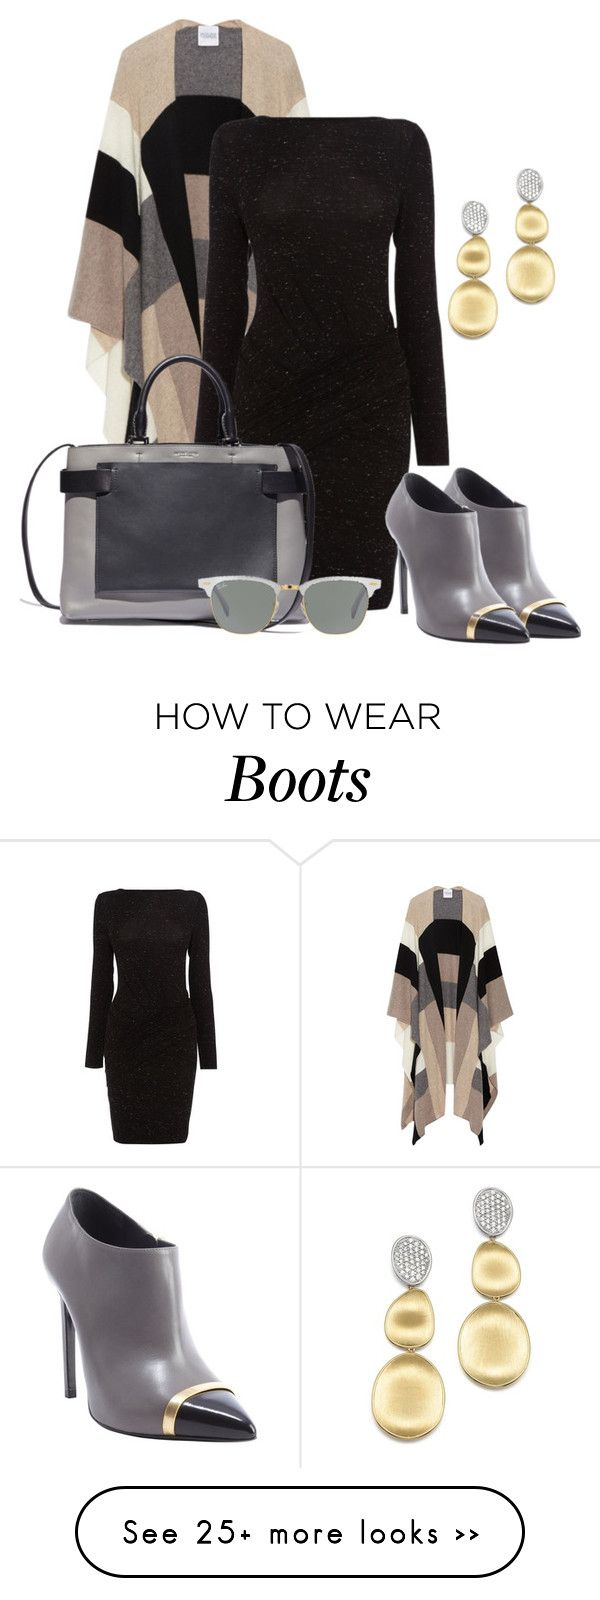 """Ankle boots and a poncho"" by depolo-marina on Polyvore featuring Madeleine Thompson, Karen Millen, Yves Saint Laurent, Ray-Ban and Marco Bicego"